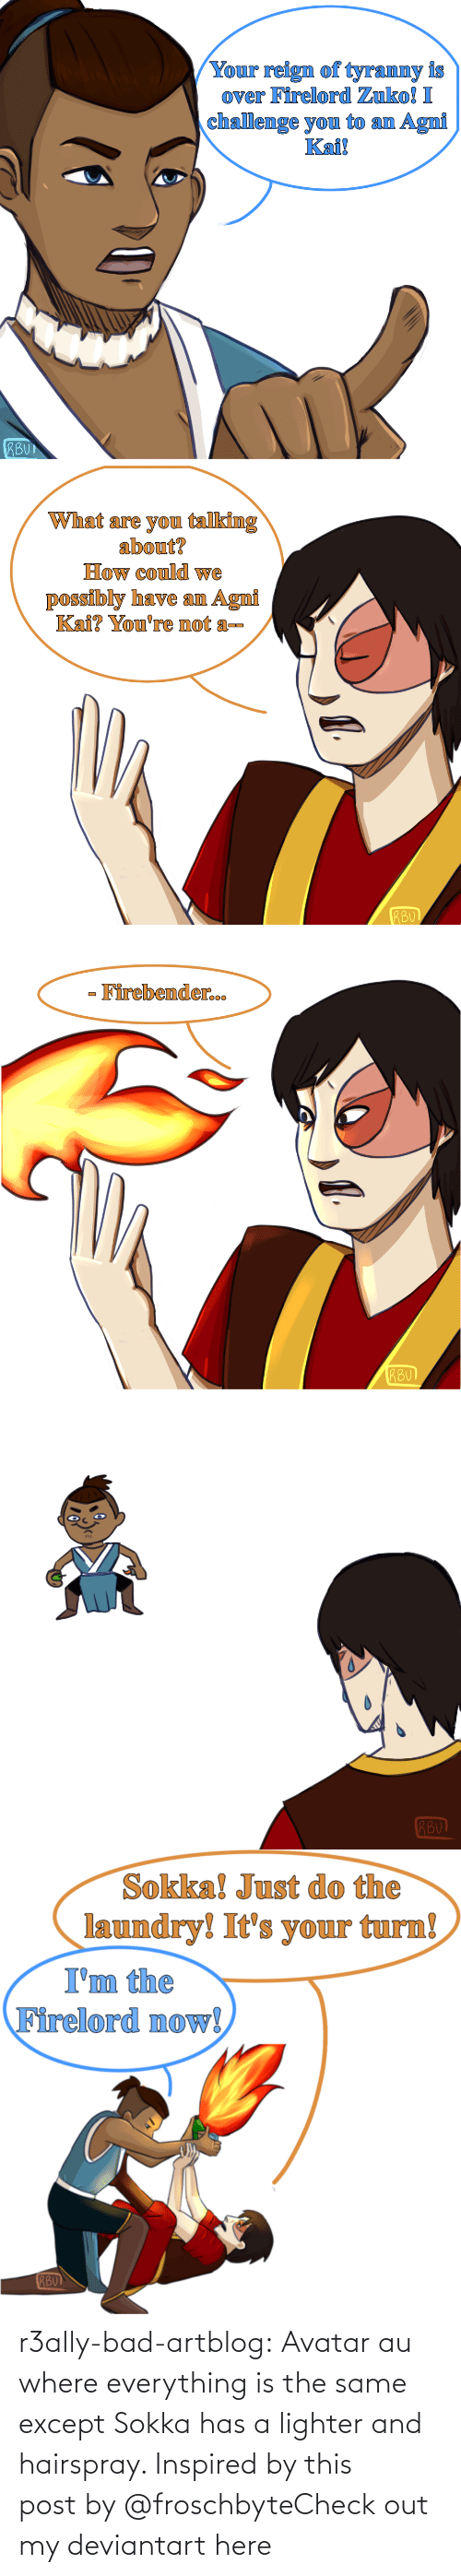 Submit: r3ally-bad-artblog:  Avatar au where everything is the same except Sokka has a lighter and hairspray. Inspired by this post by @froschbyteCheck out my deviantart here